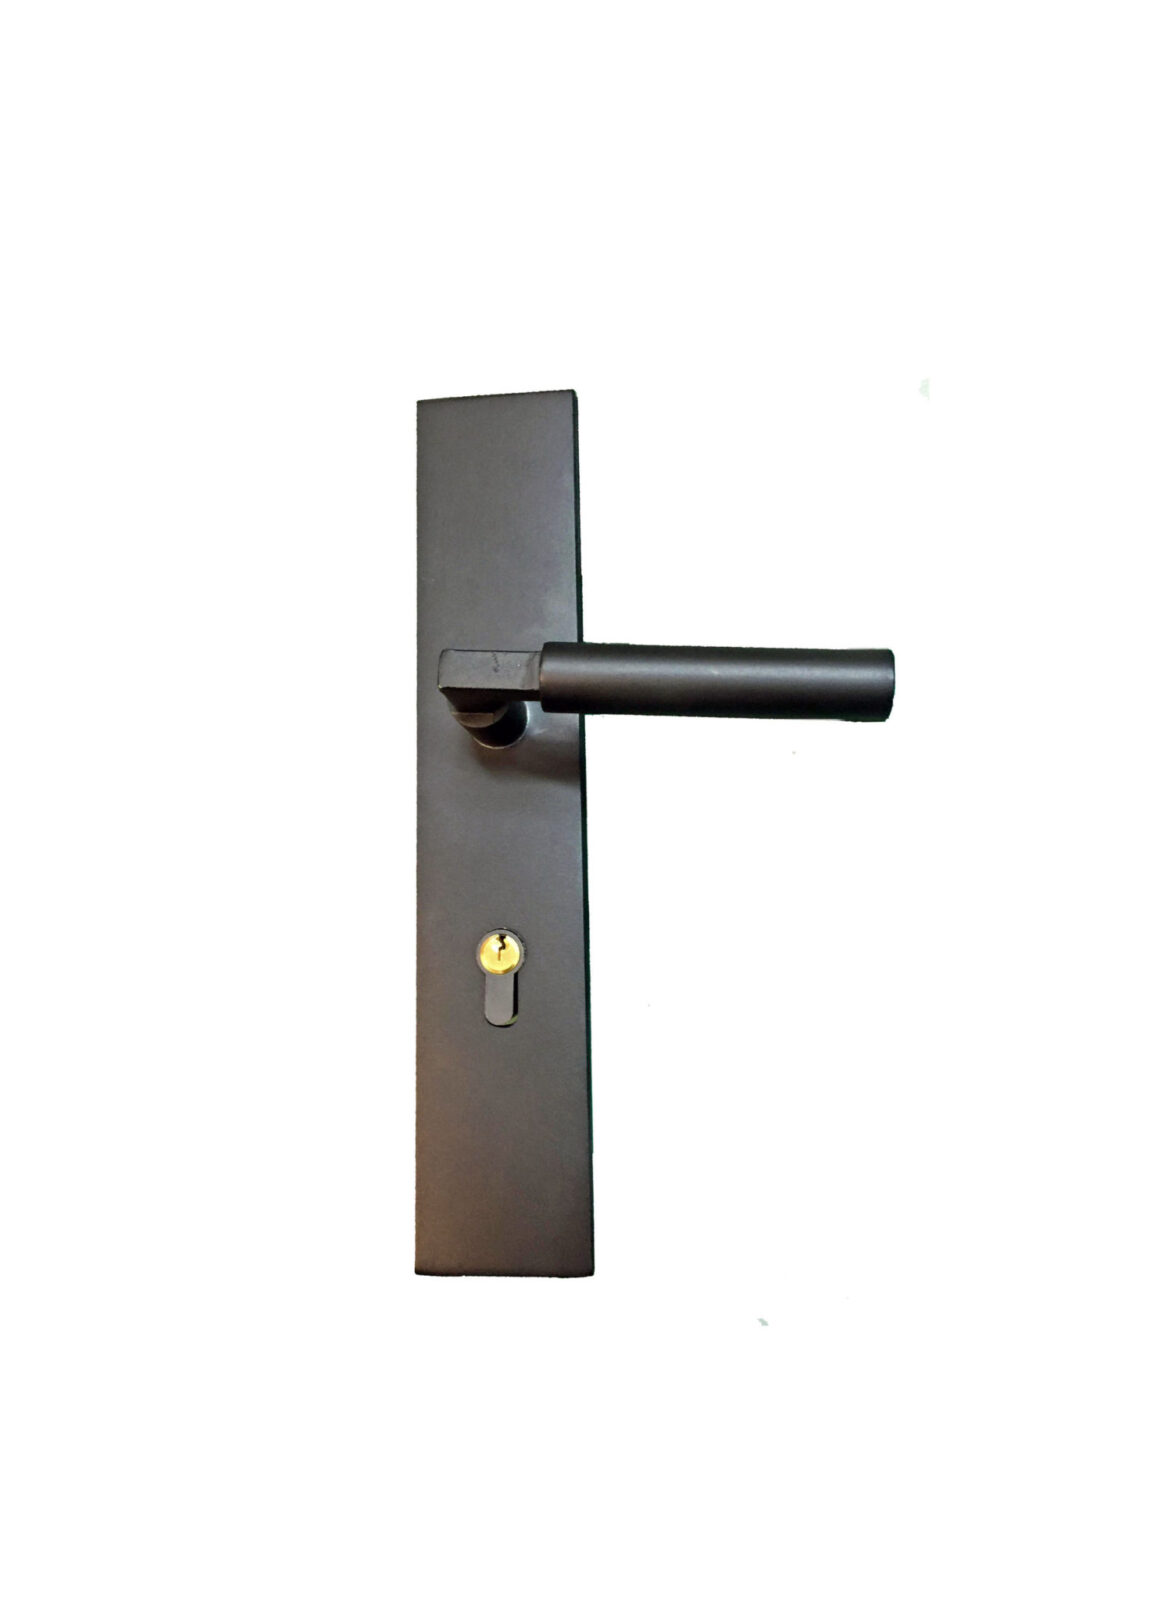 STAR ISLAND DOUBLE PLATE WROUGH IRON HANDLE. (3)